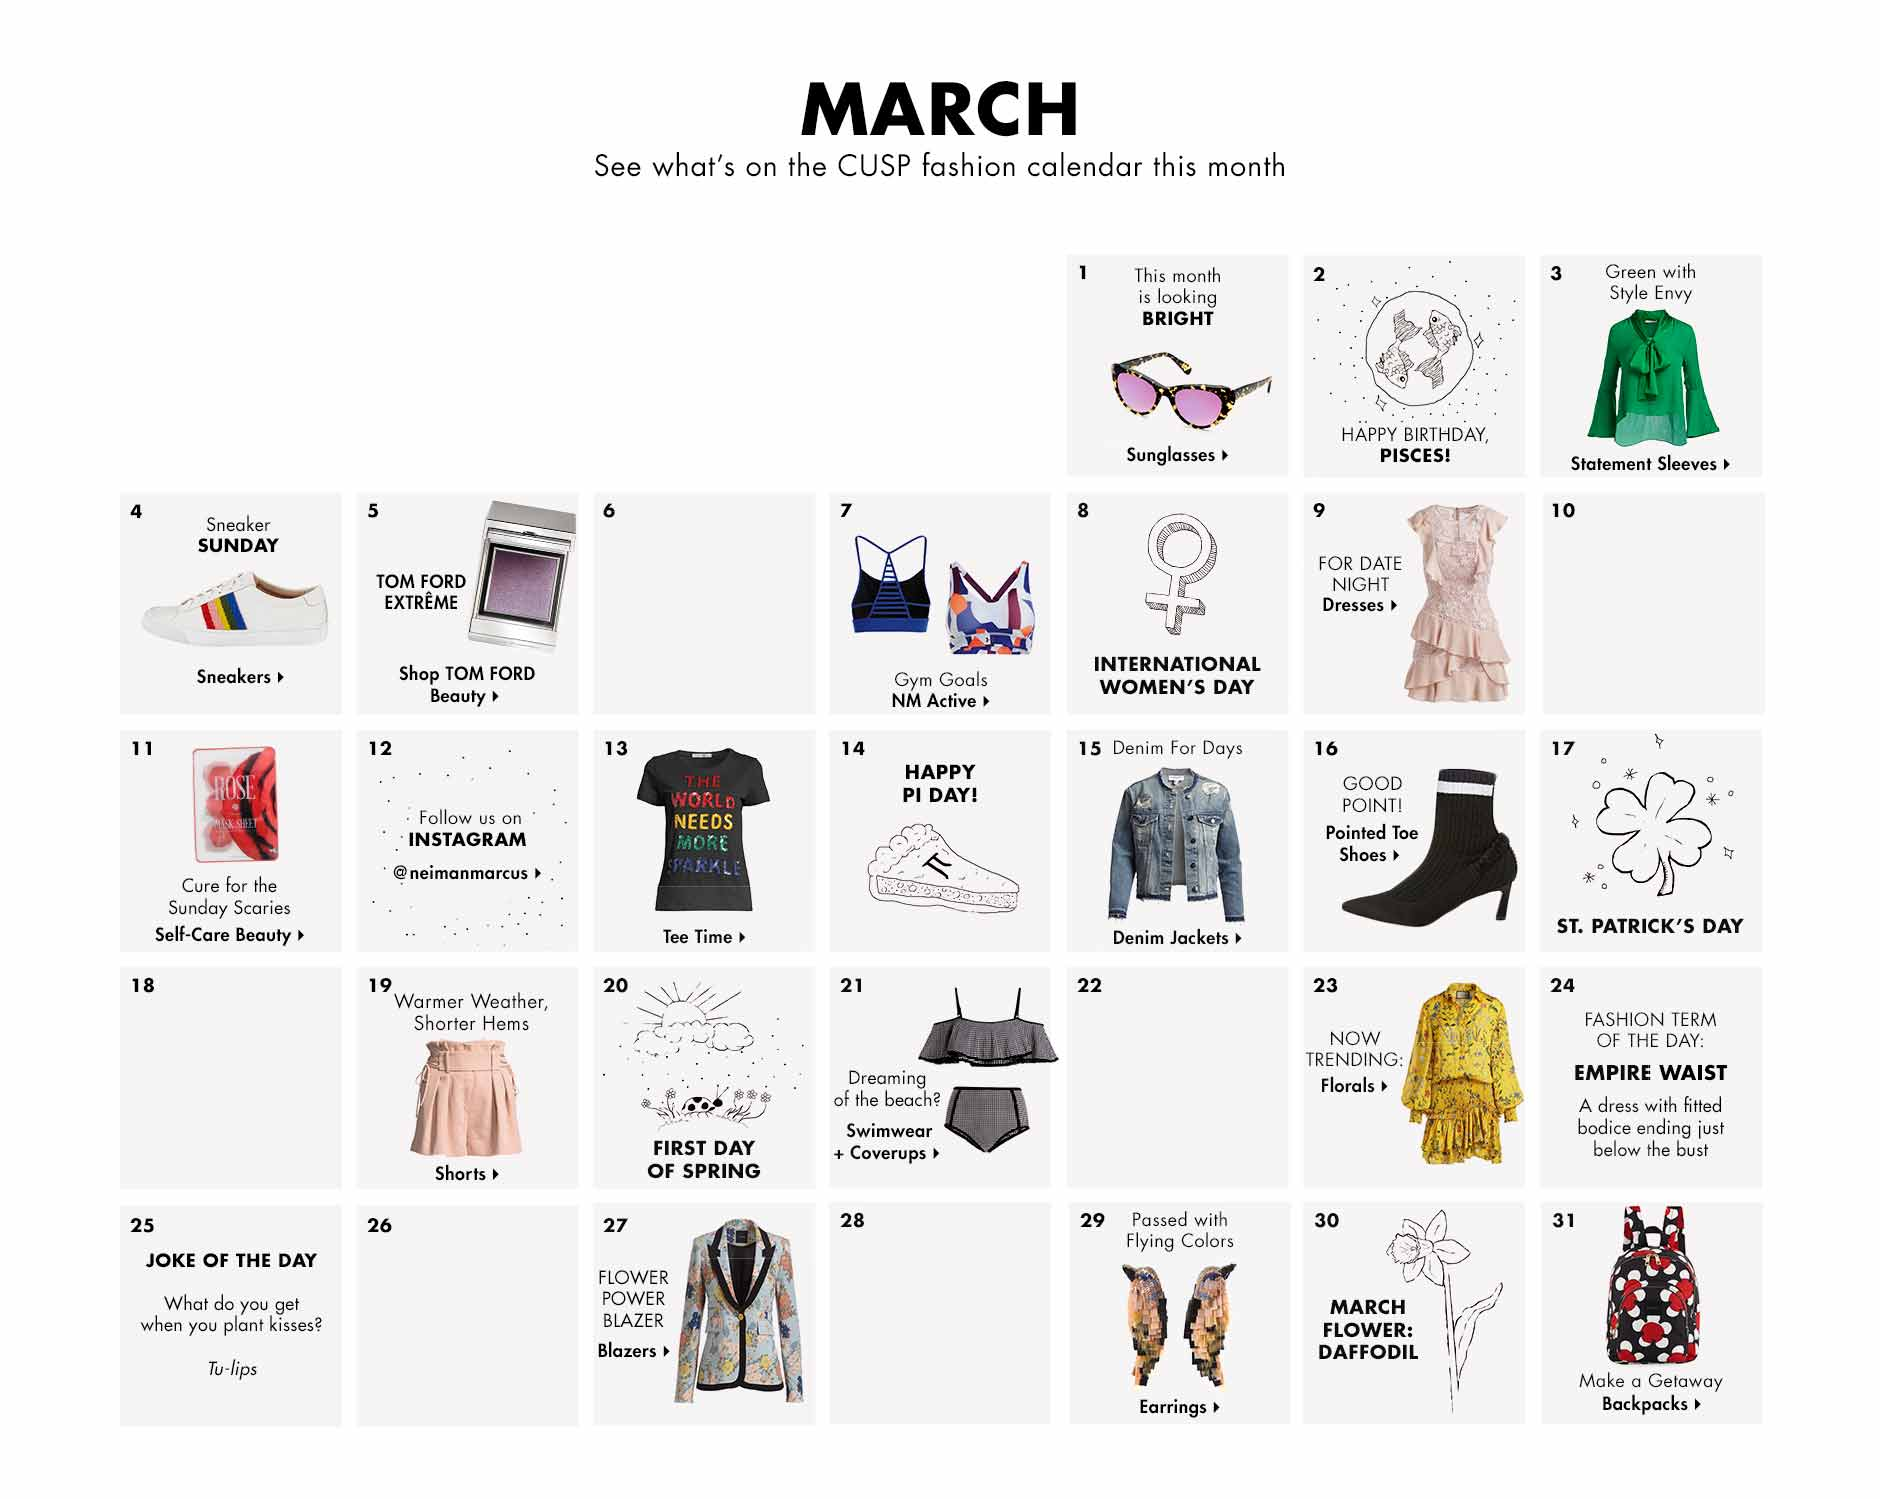 March - See what's on the CUSP fashion calendar this month